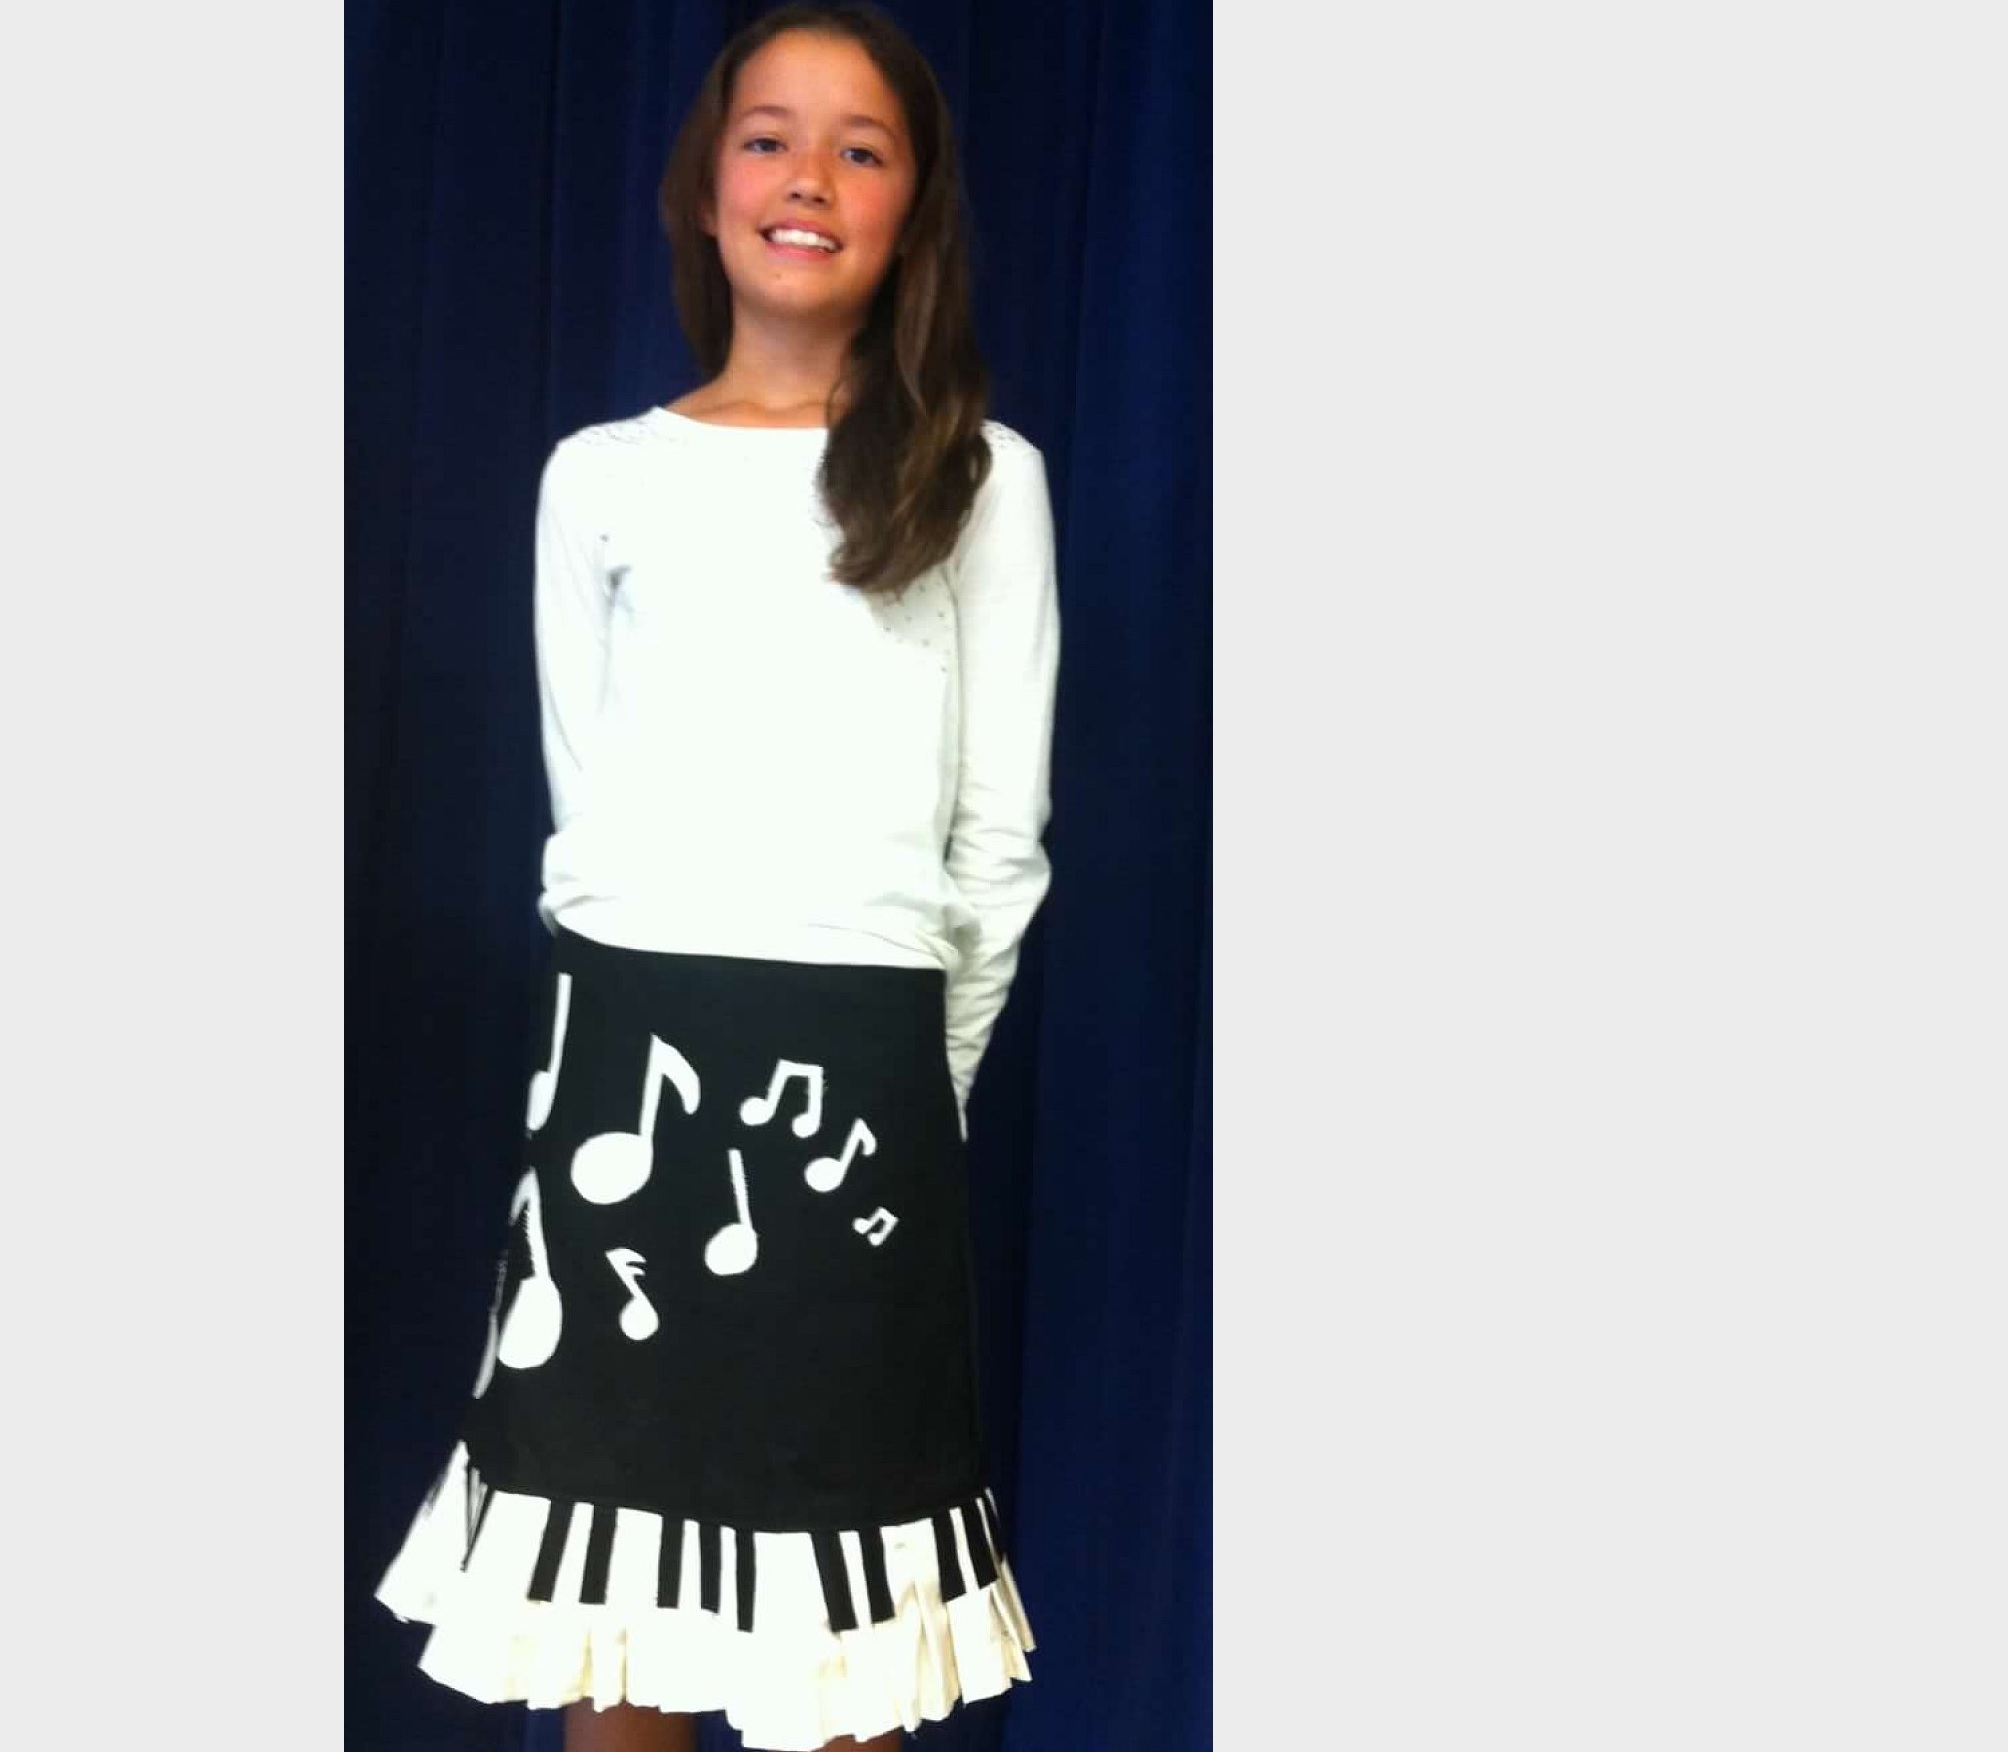 'Piano' skirt designed by a middle school student